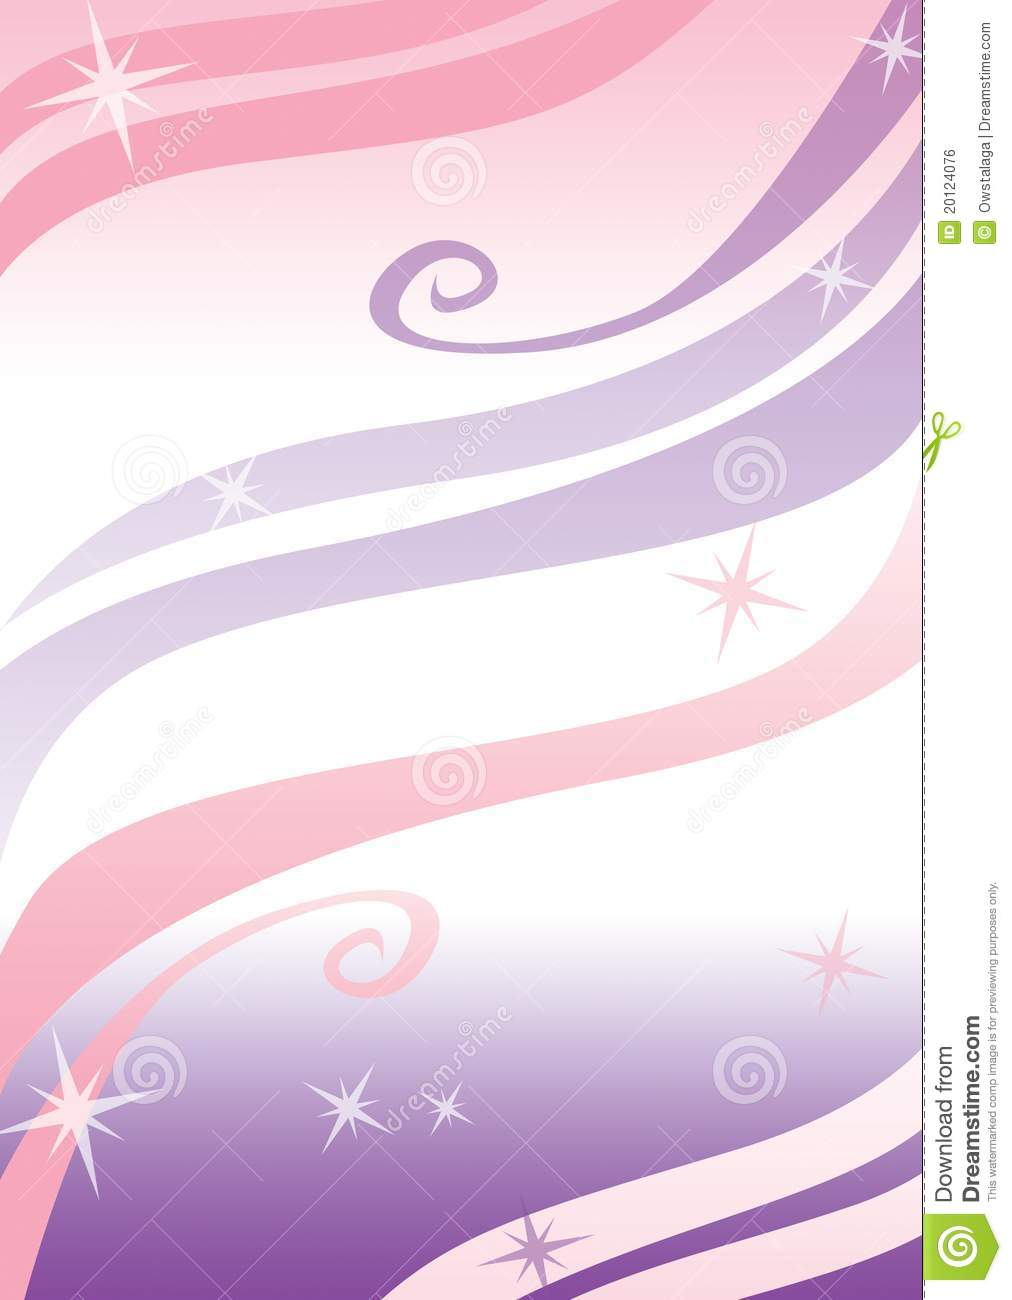 Sparkly Flyer template stock illustration. Illustration of glittery ...